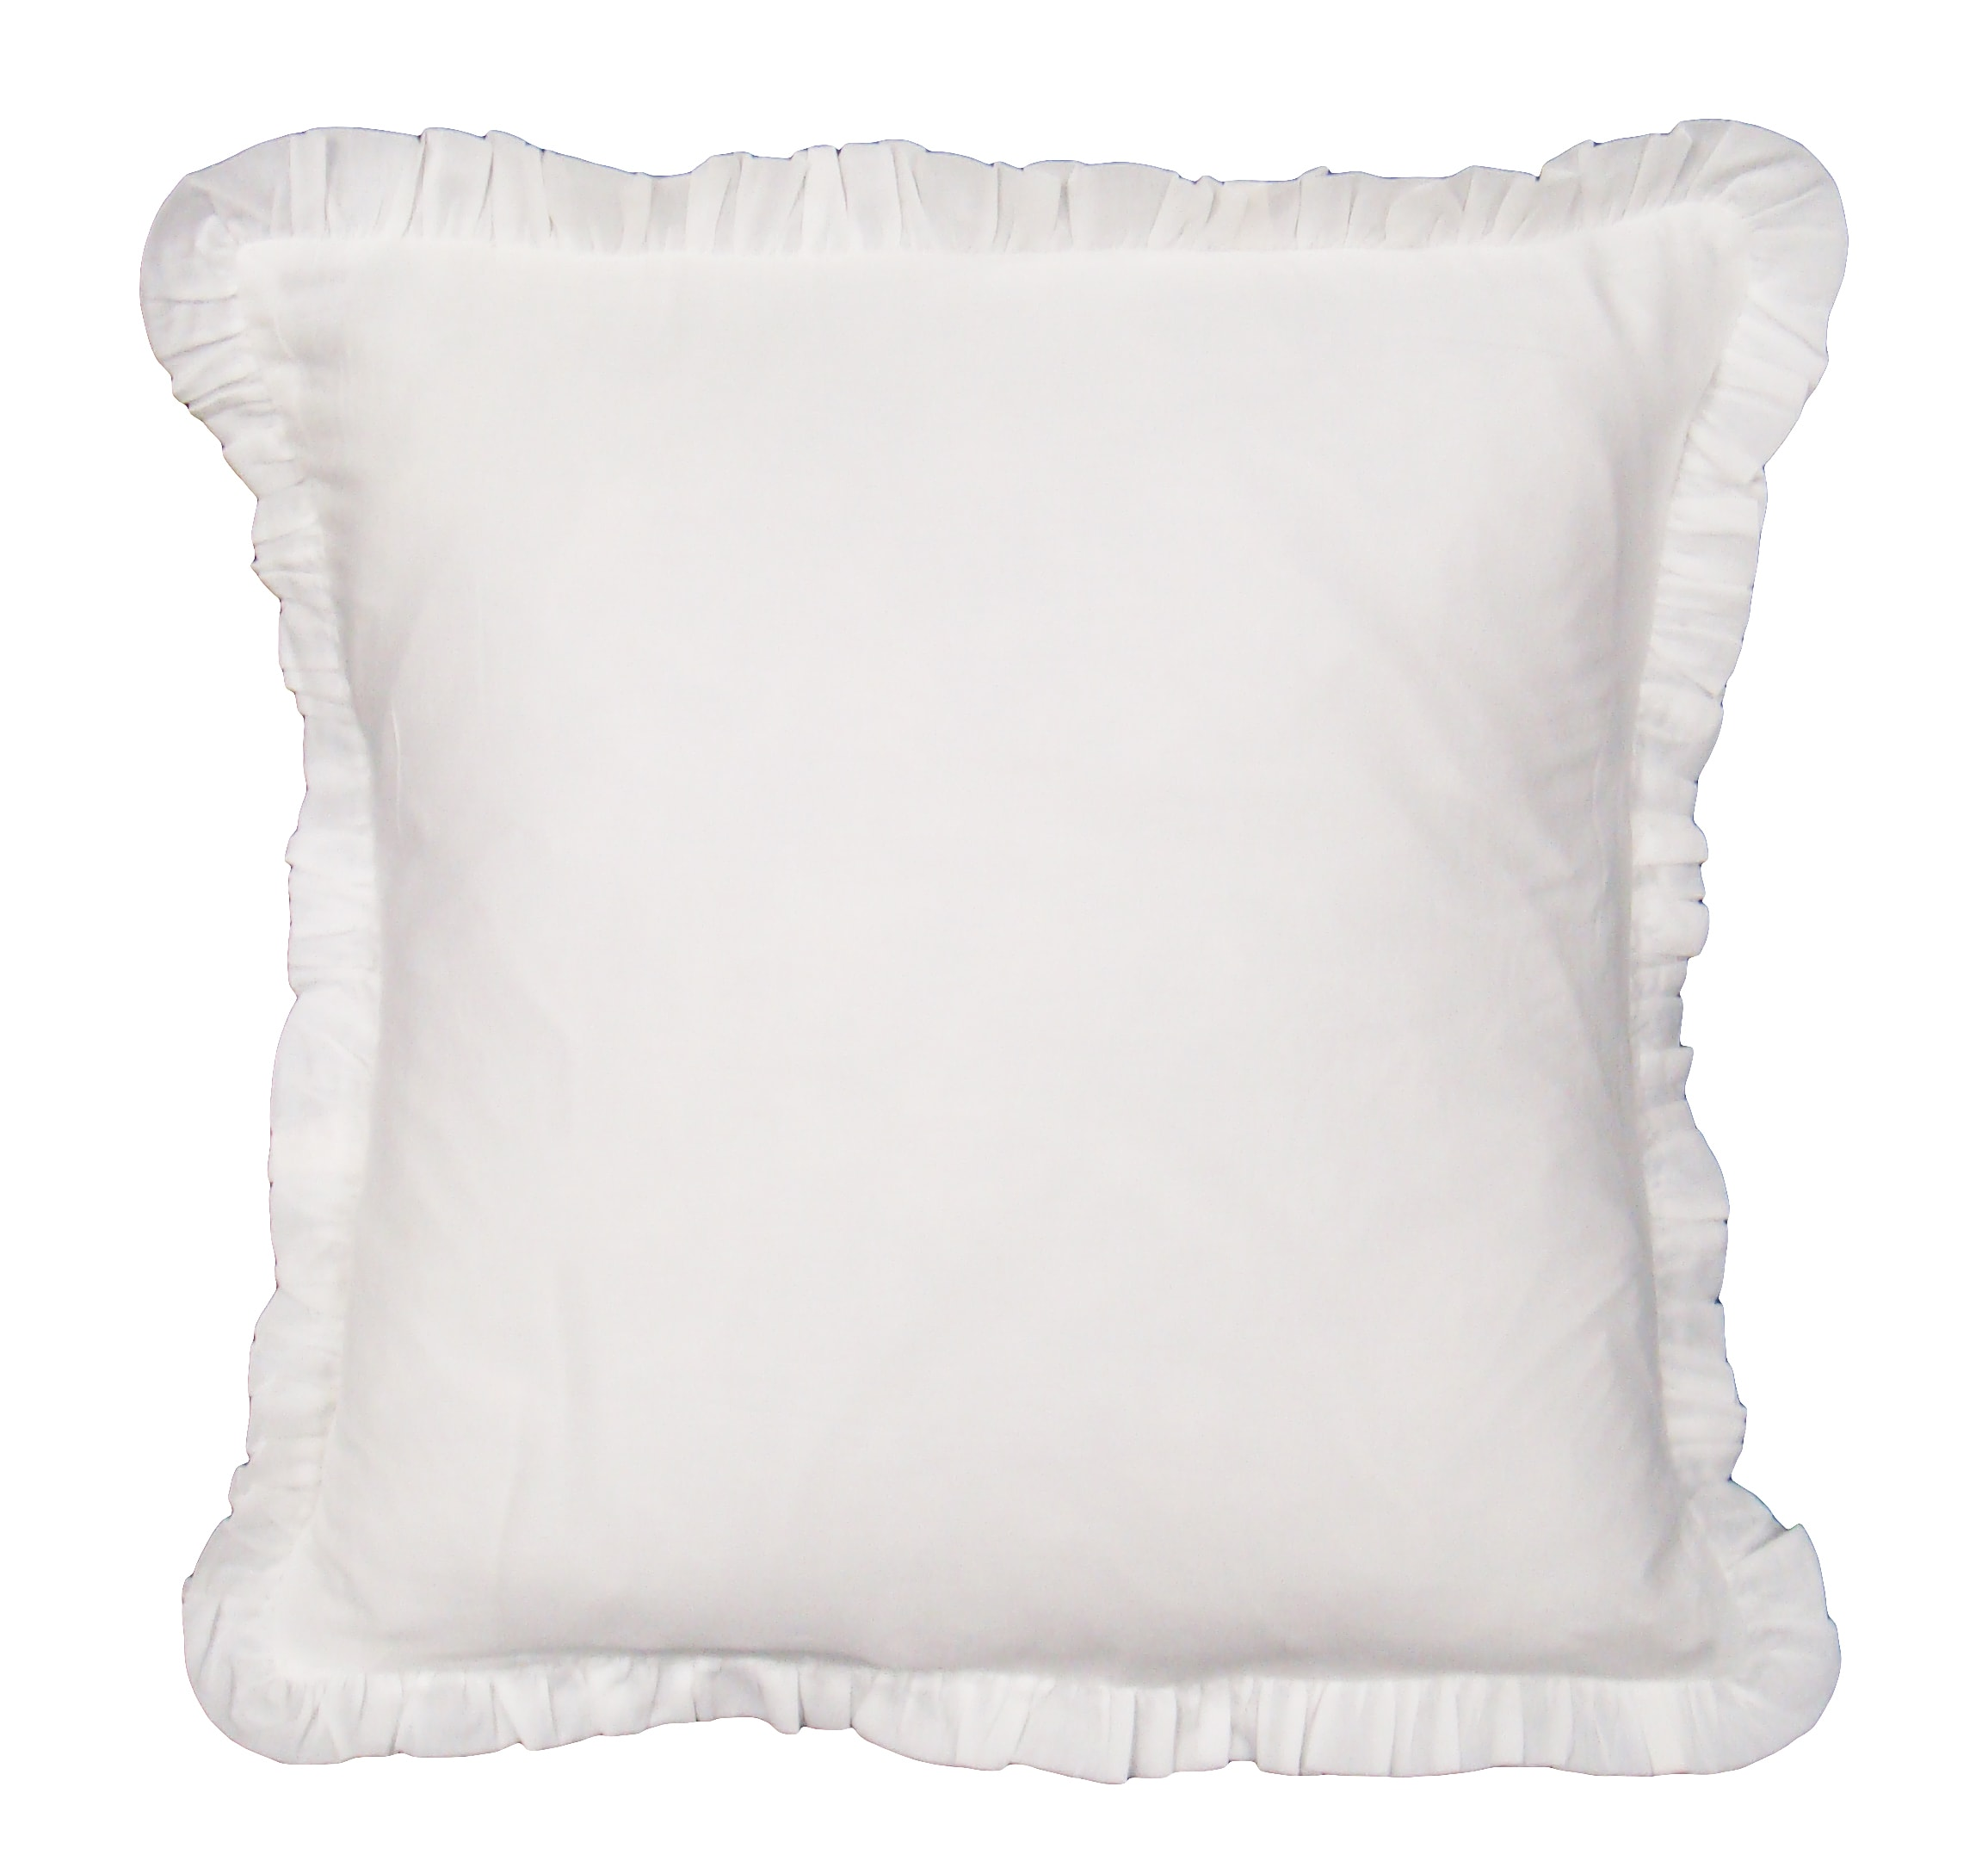 Shop Acelin White Decorative Pillow Free Shipping Today